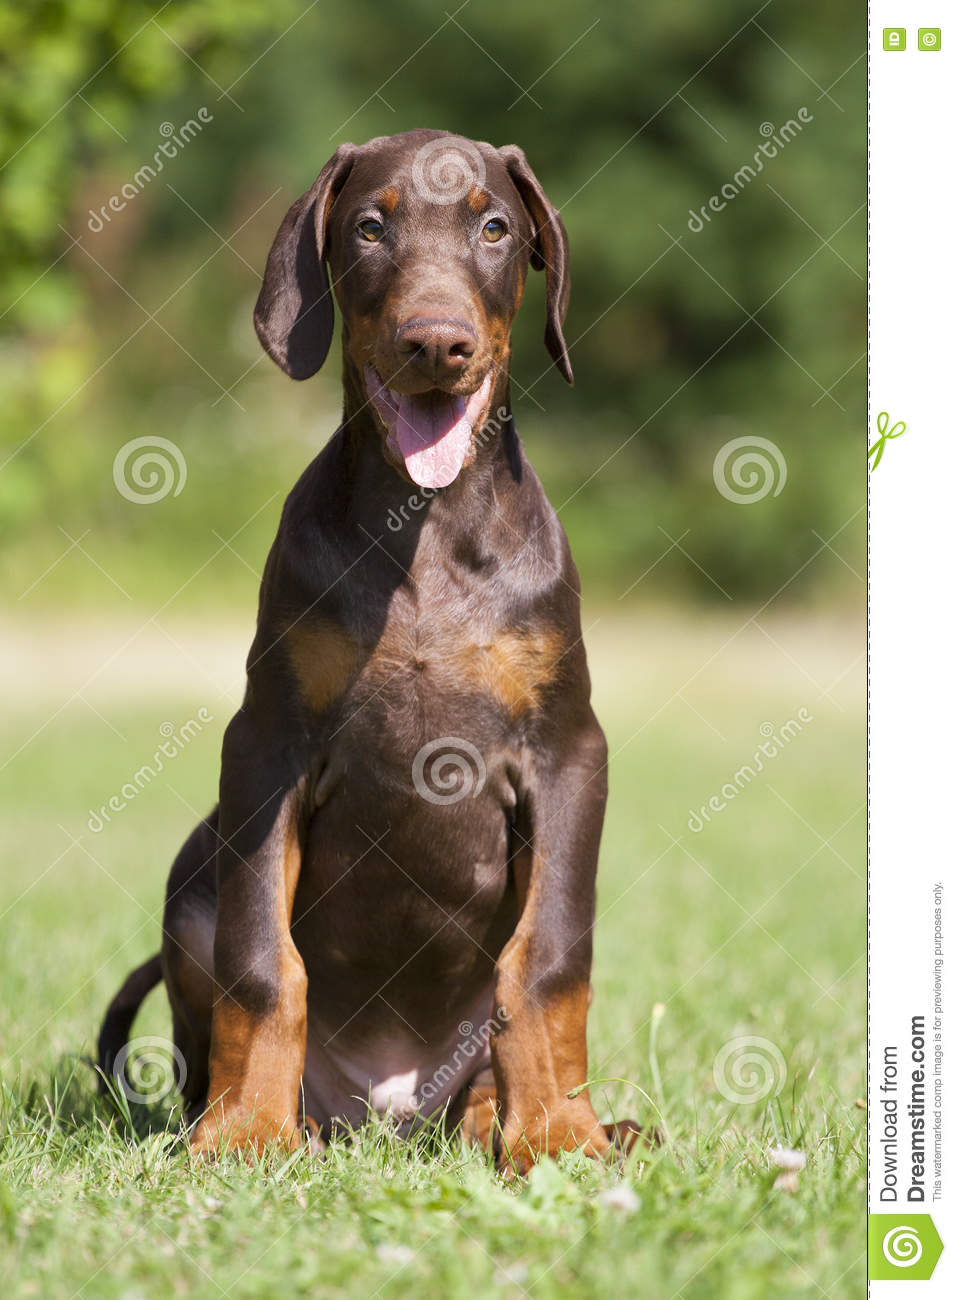 1 790 Brown Doberman Puppy Photos Free Royalty Free Stock Photos From Dreamstime